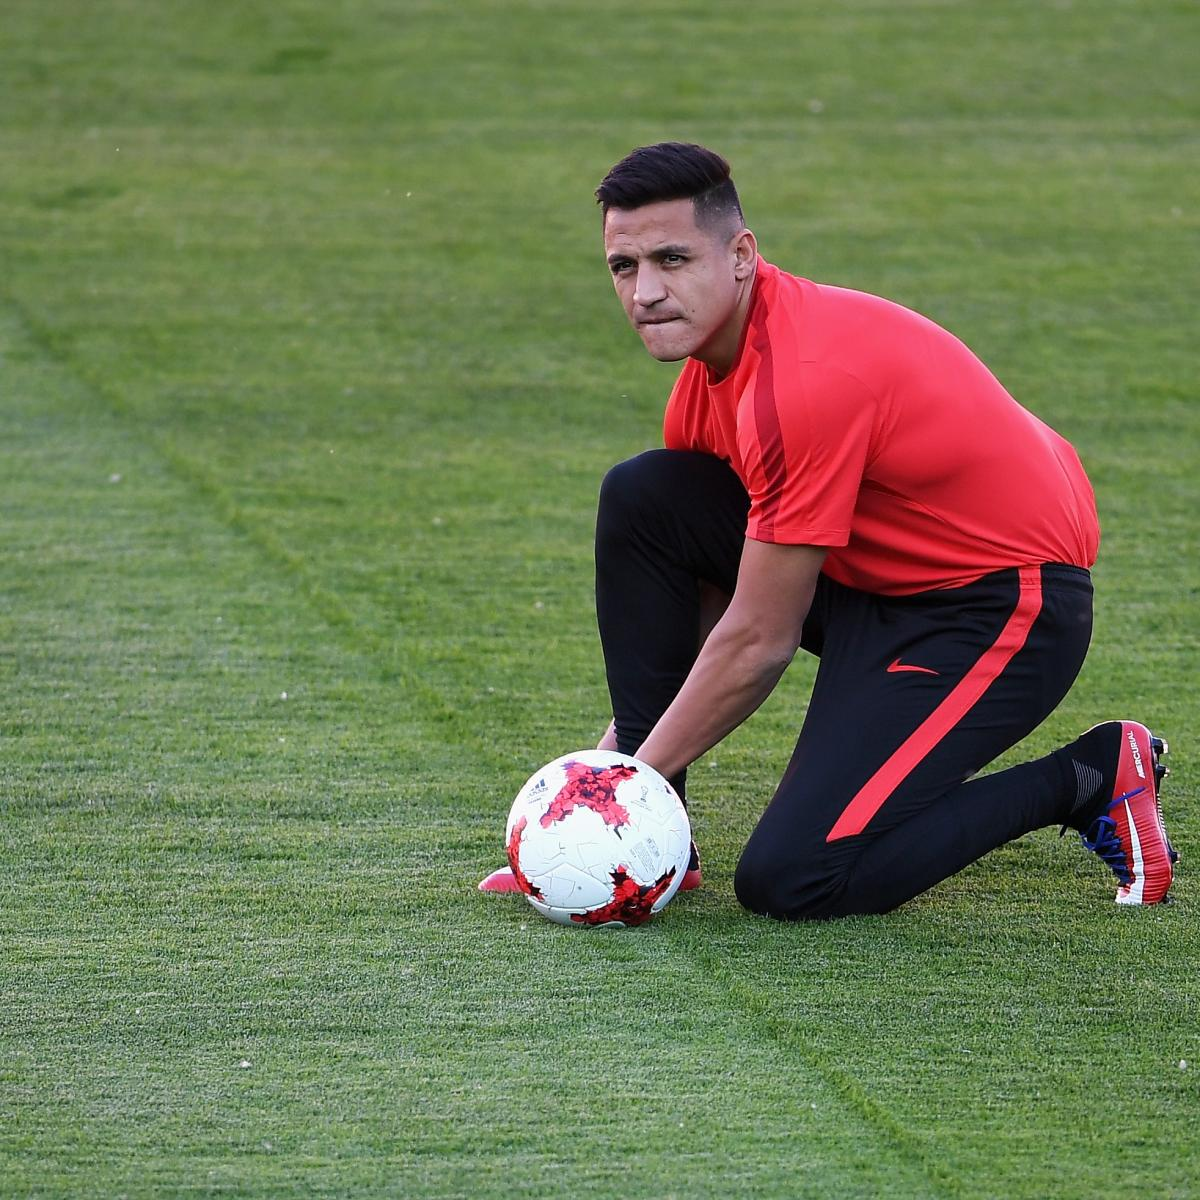 Manchester United Transfer News Alexis Sanchez Rumours: Alexis Sanchez Wants To 'Win Everything' After Manchester